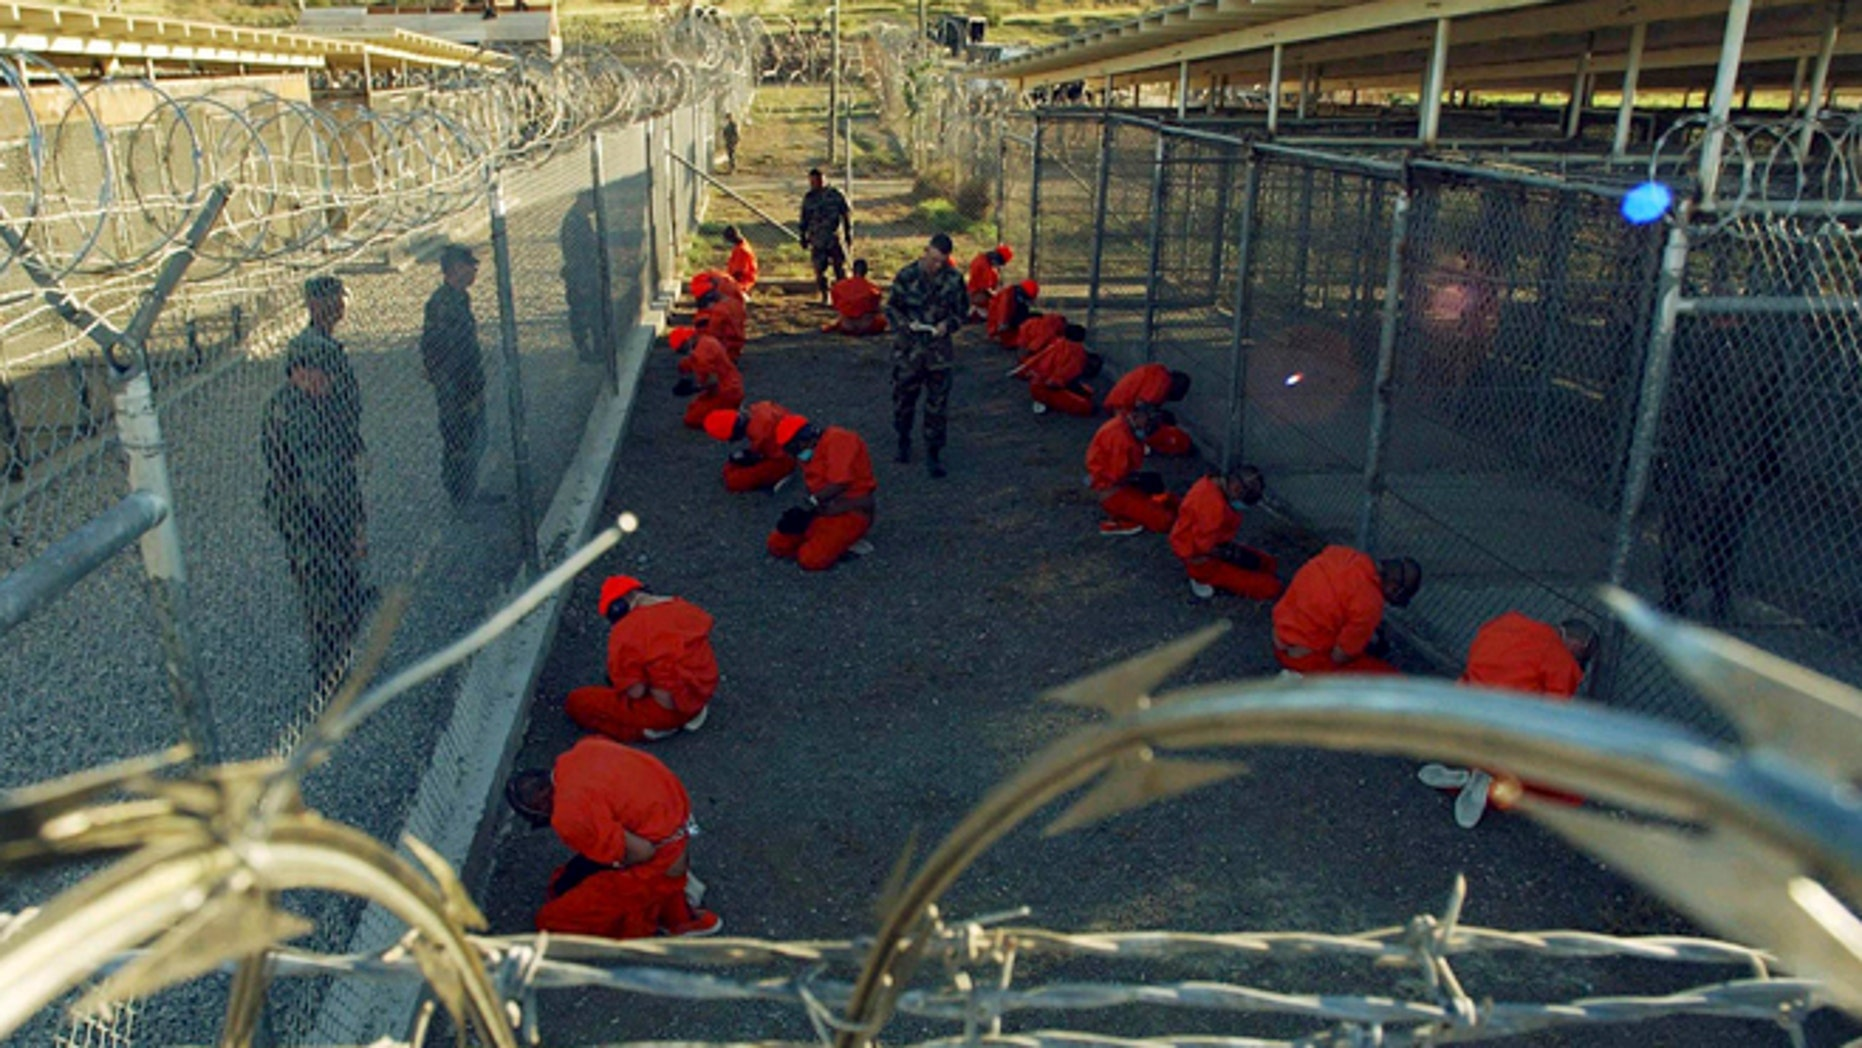 Jan 11, 2002: Detainees in orange jumpsuits sit in a holding area under the watchful eyes of military police during in-processing to the temporary detention facility at Camp X-Ray of Naval Base Guantanamo Bay. (Reuters)